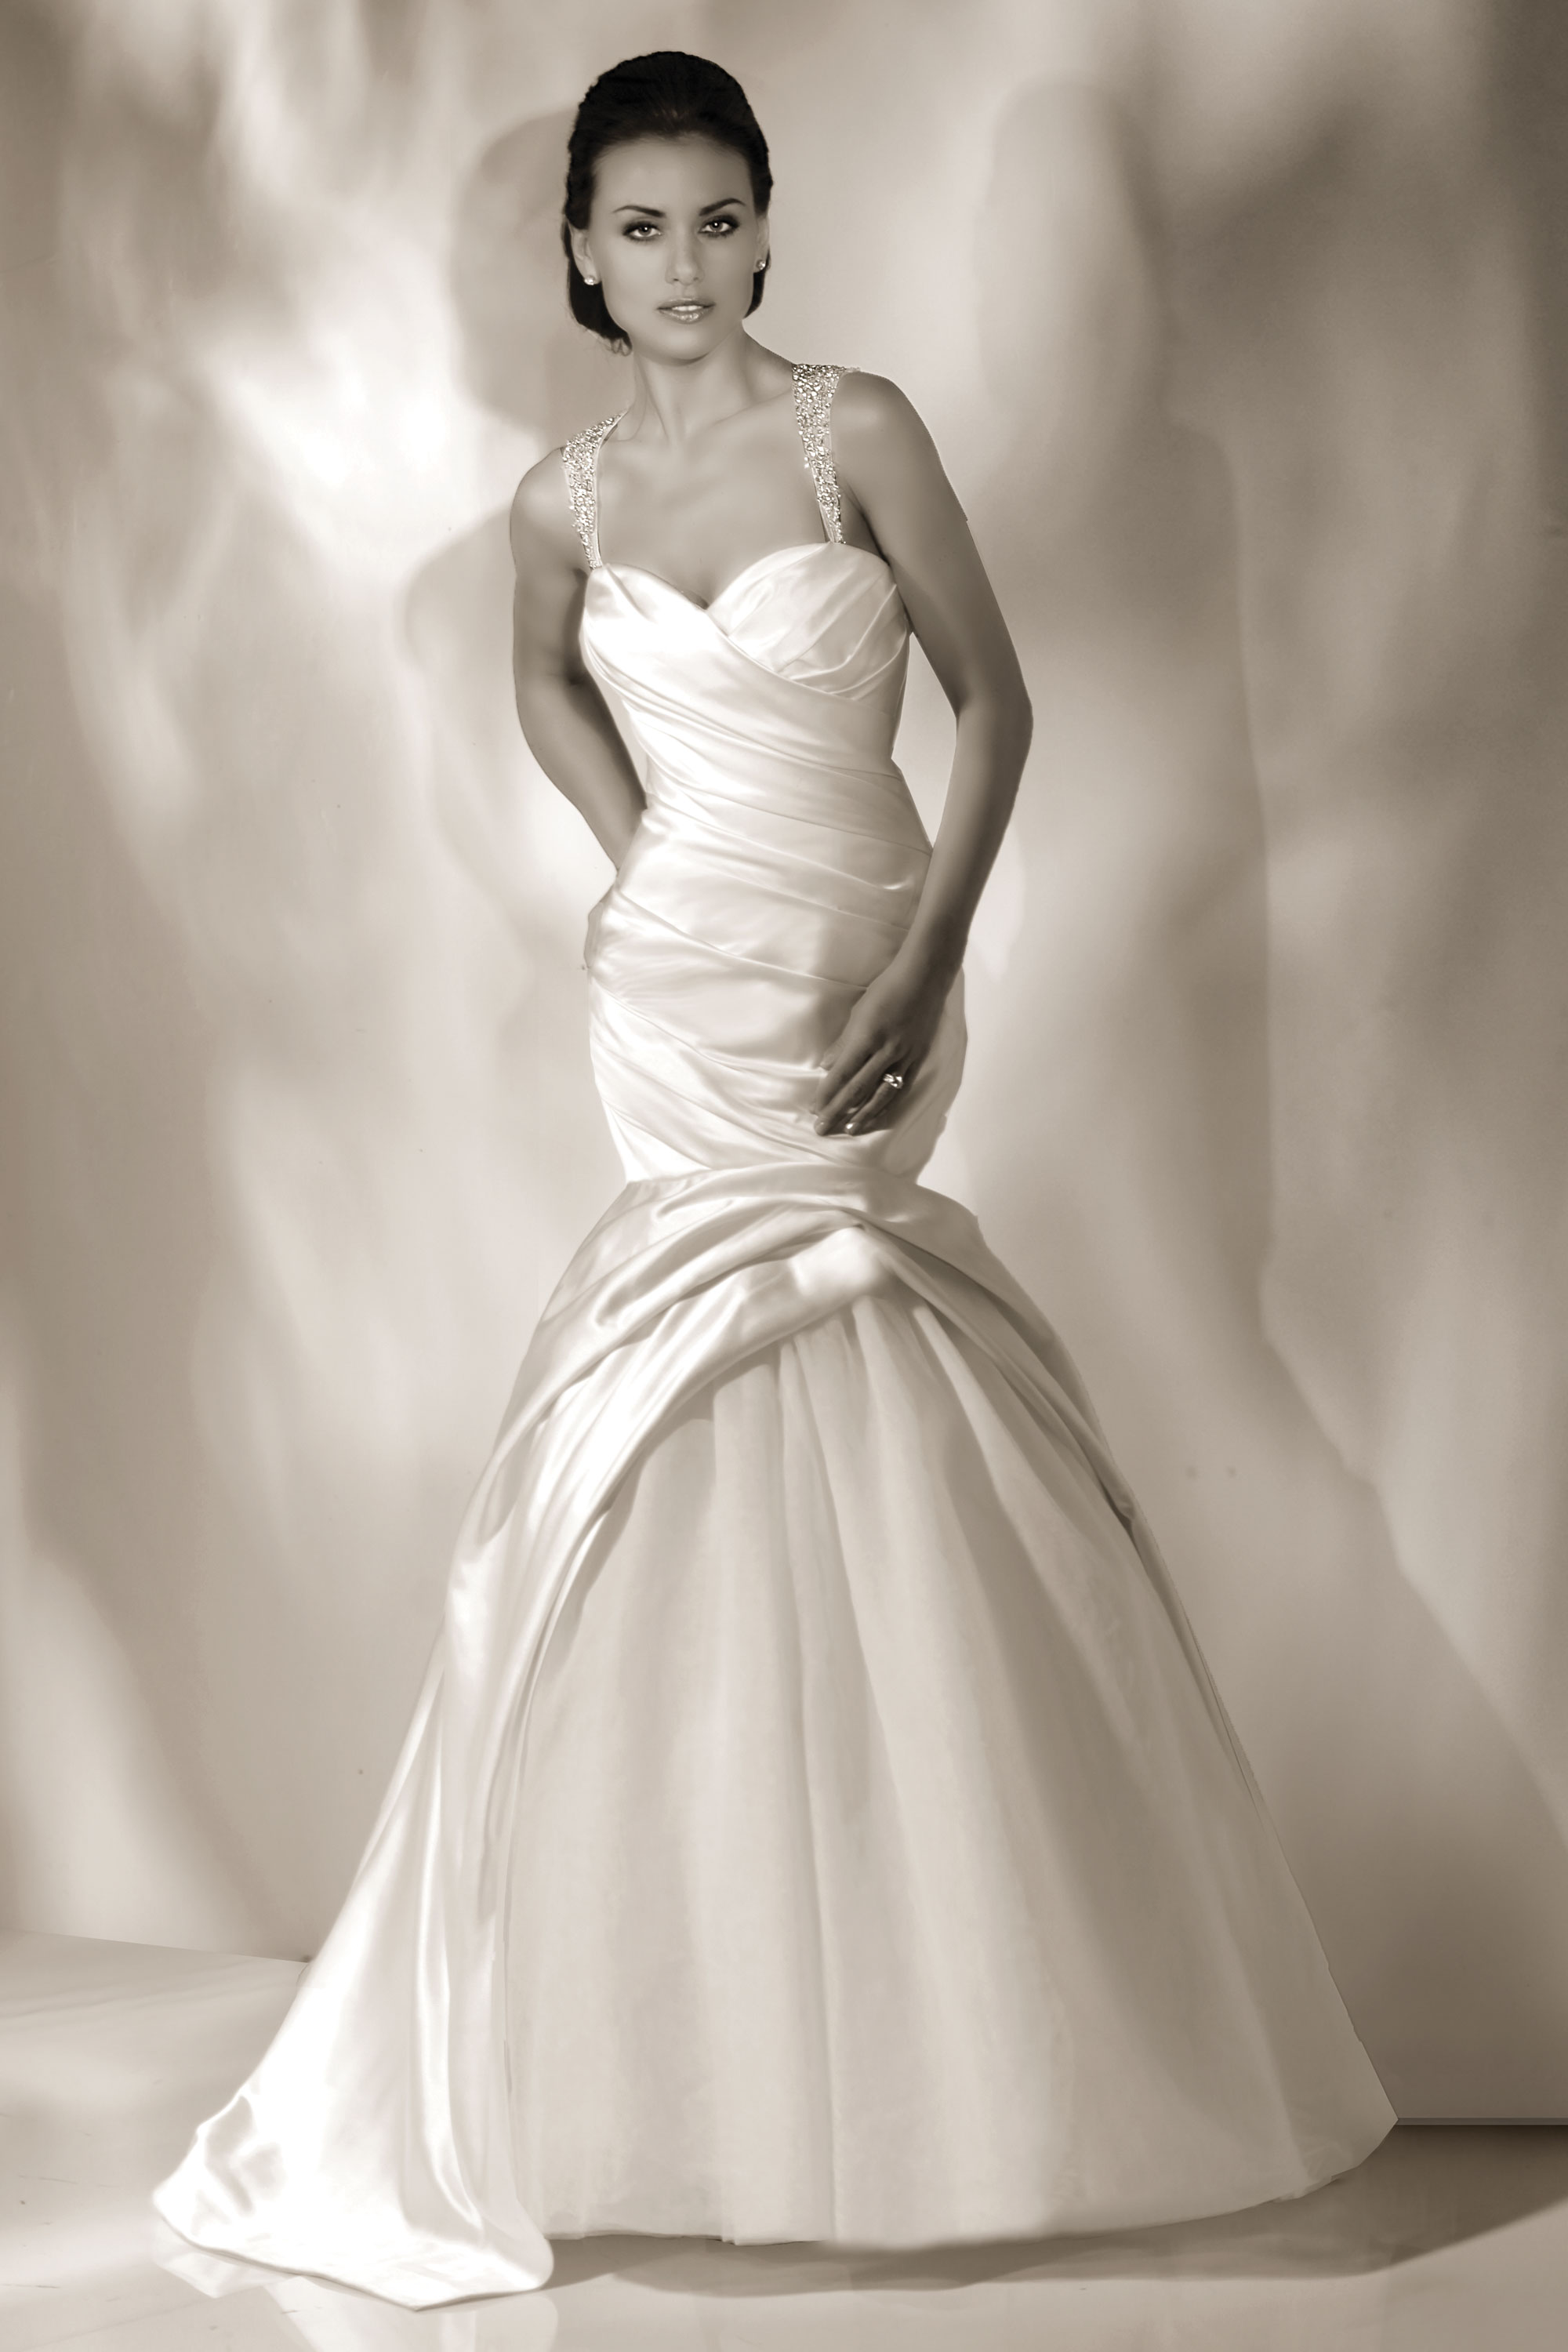 cristiano-lucci-wedding-dresses-25-01052014